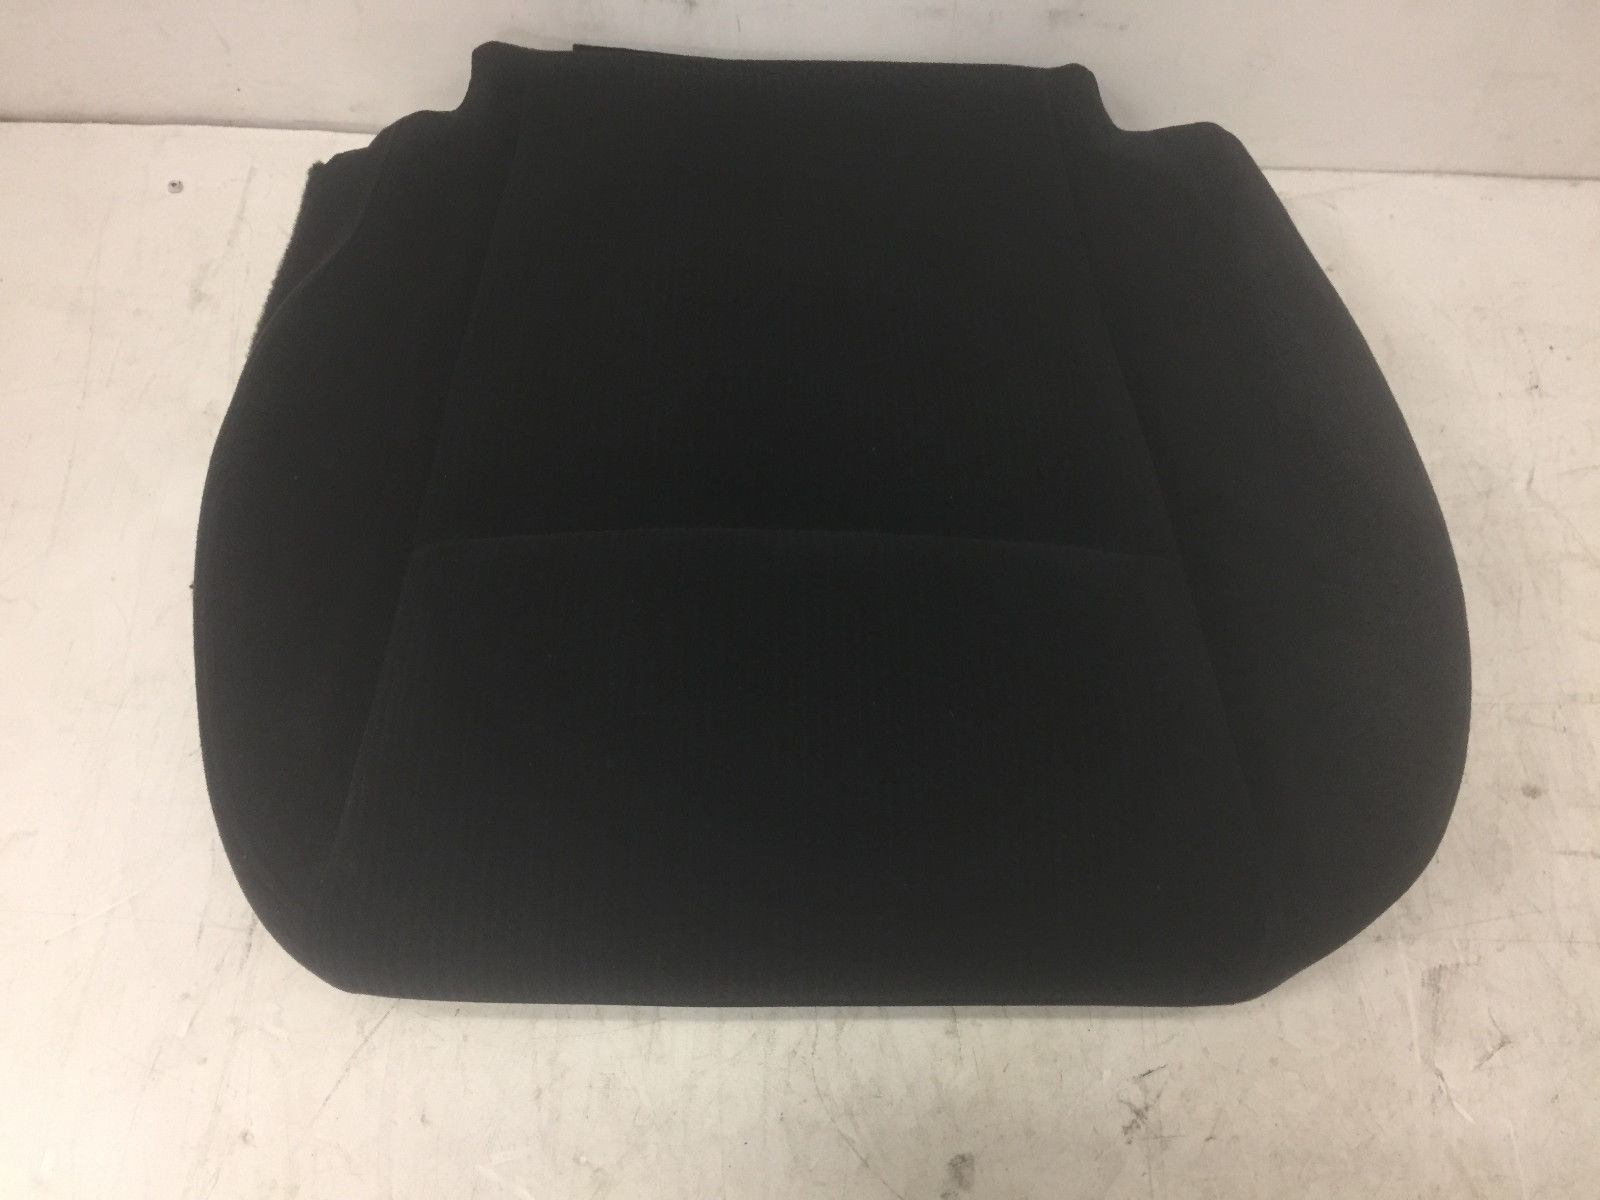 2013 Nissan Altima Front Left Driver Said Lower Black Cover Seat